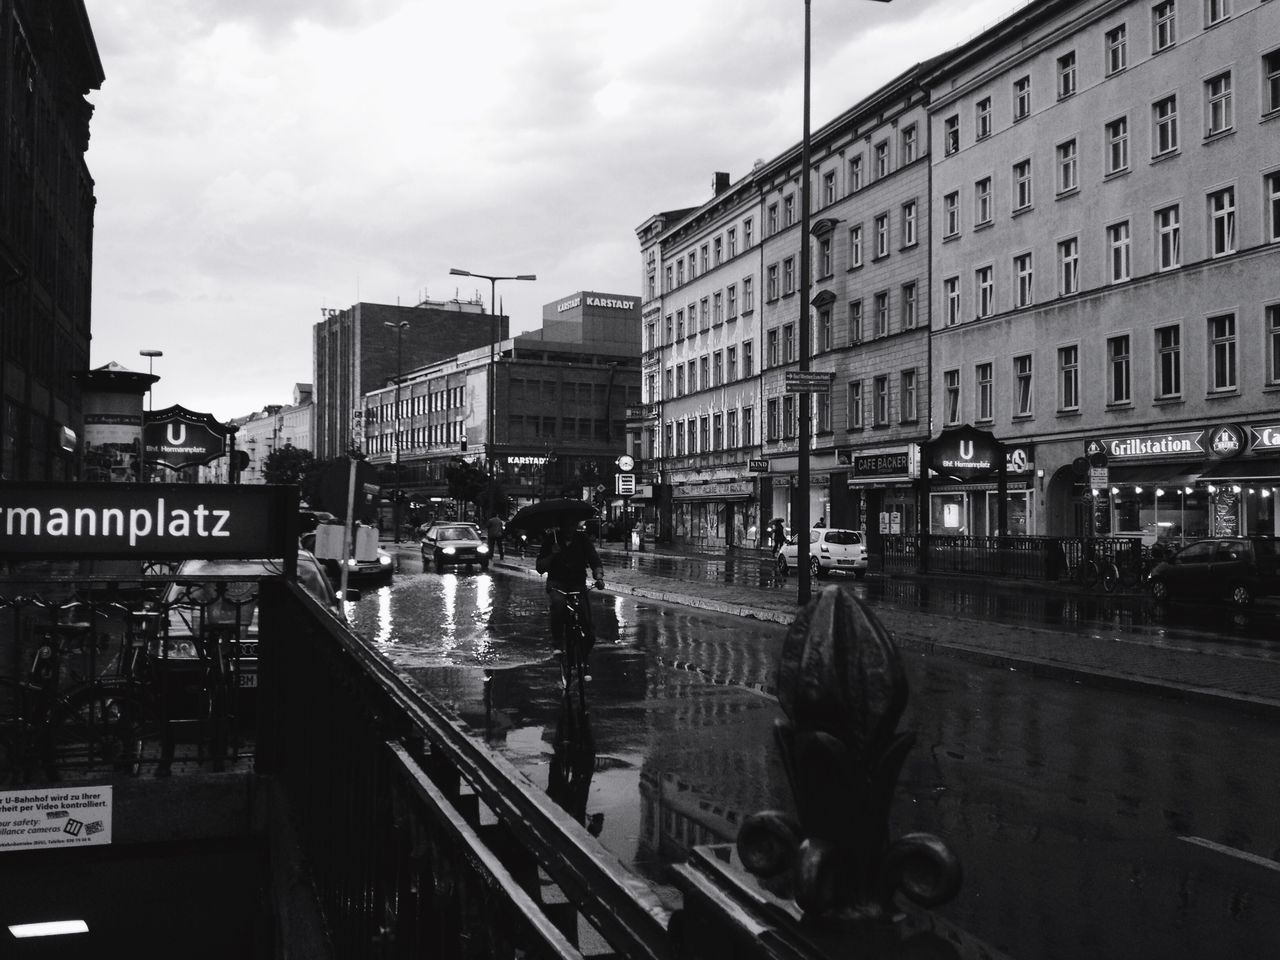 Welcome To Black Berlin Berliner Ansichten Rainy Days Hermannplatz Streetphoto_bw Streetphotography Urban Lifestyle Transportation City Reflection Real People Outdoors City Life The Street Photographer The Street Photographer - 2017 EyeEm Awards